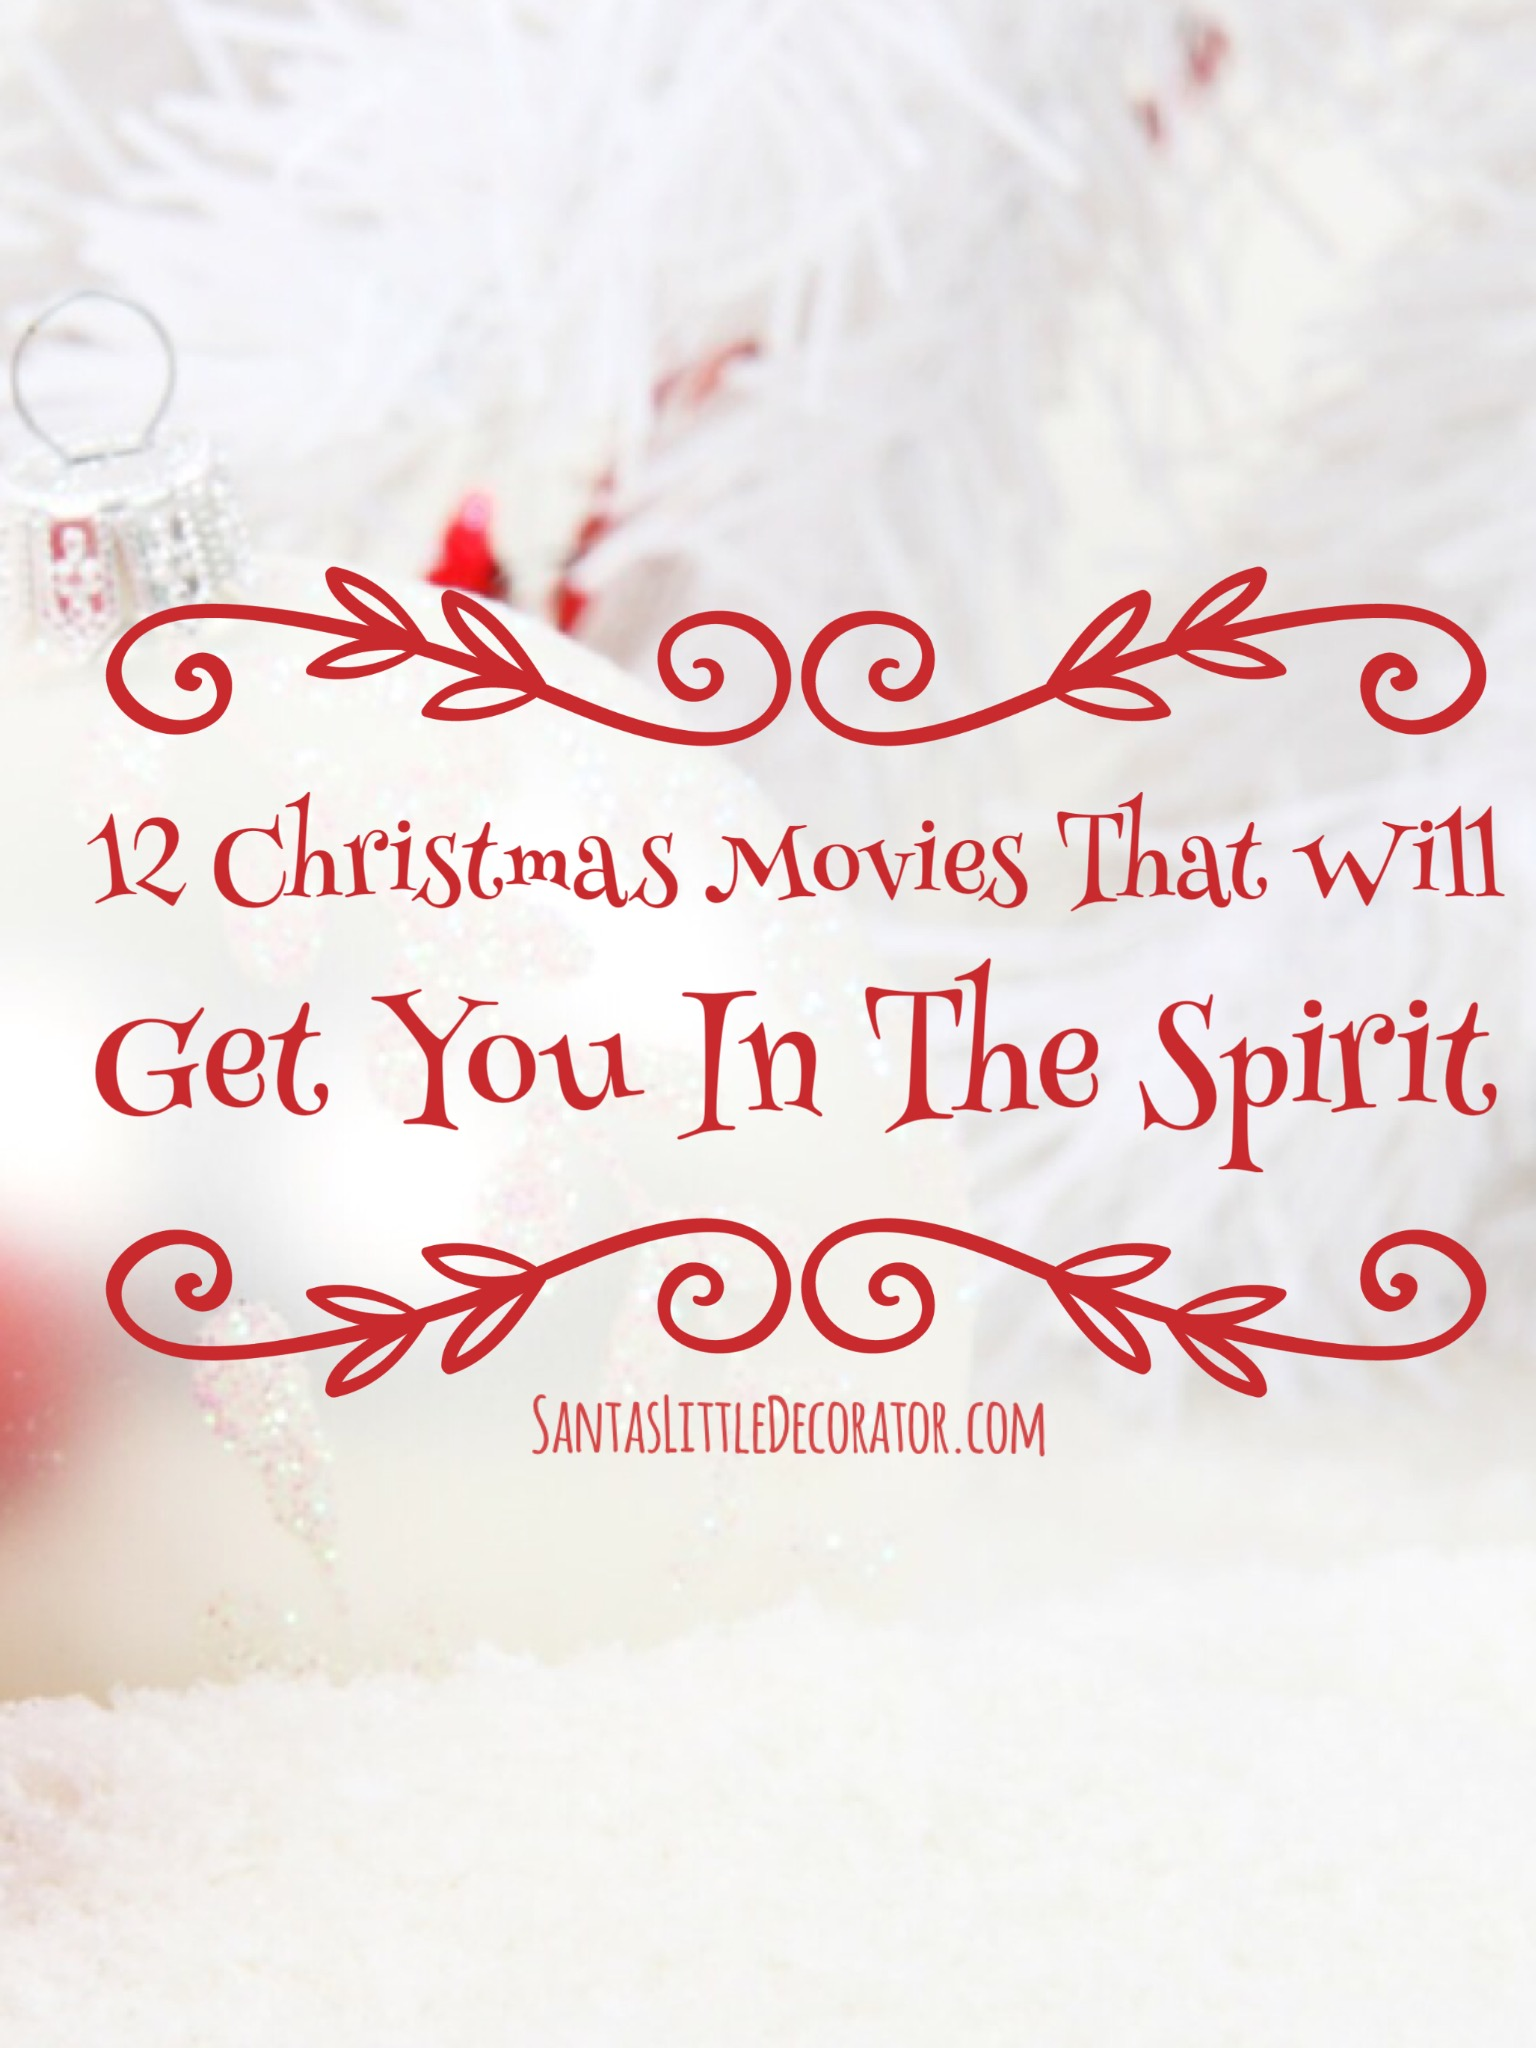 12-christmas-movies-that-will-get-you-inthe-spirit